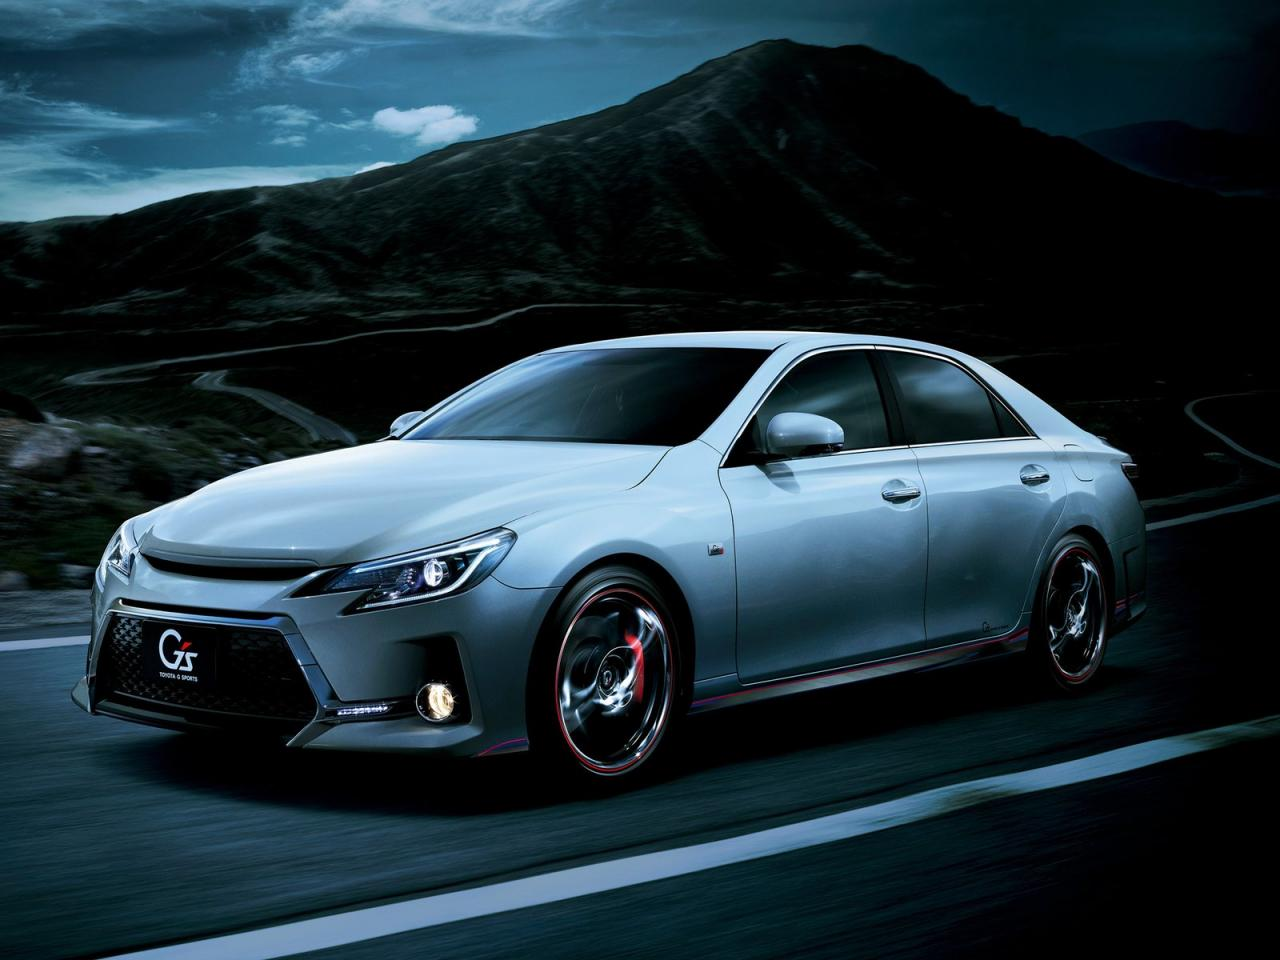 Toyota Tacoma 2016 Diesel >> 2013 Toyota Mark X Facelift - Japan-Only - autoevolution